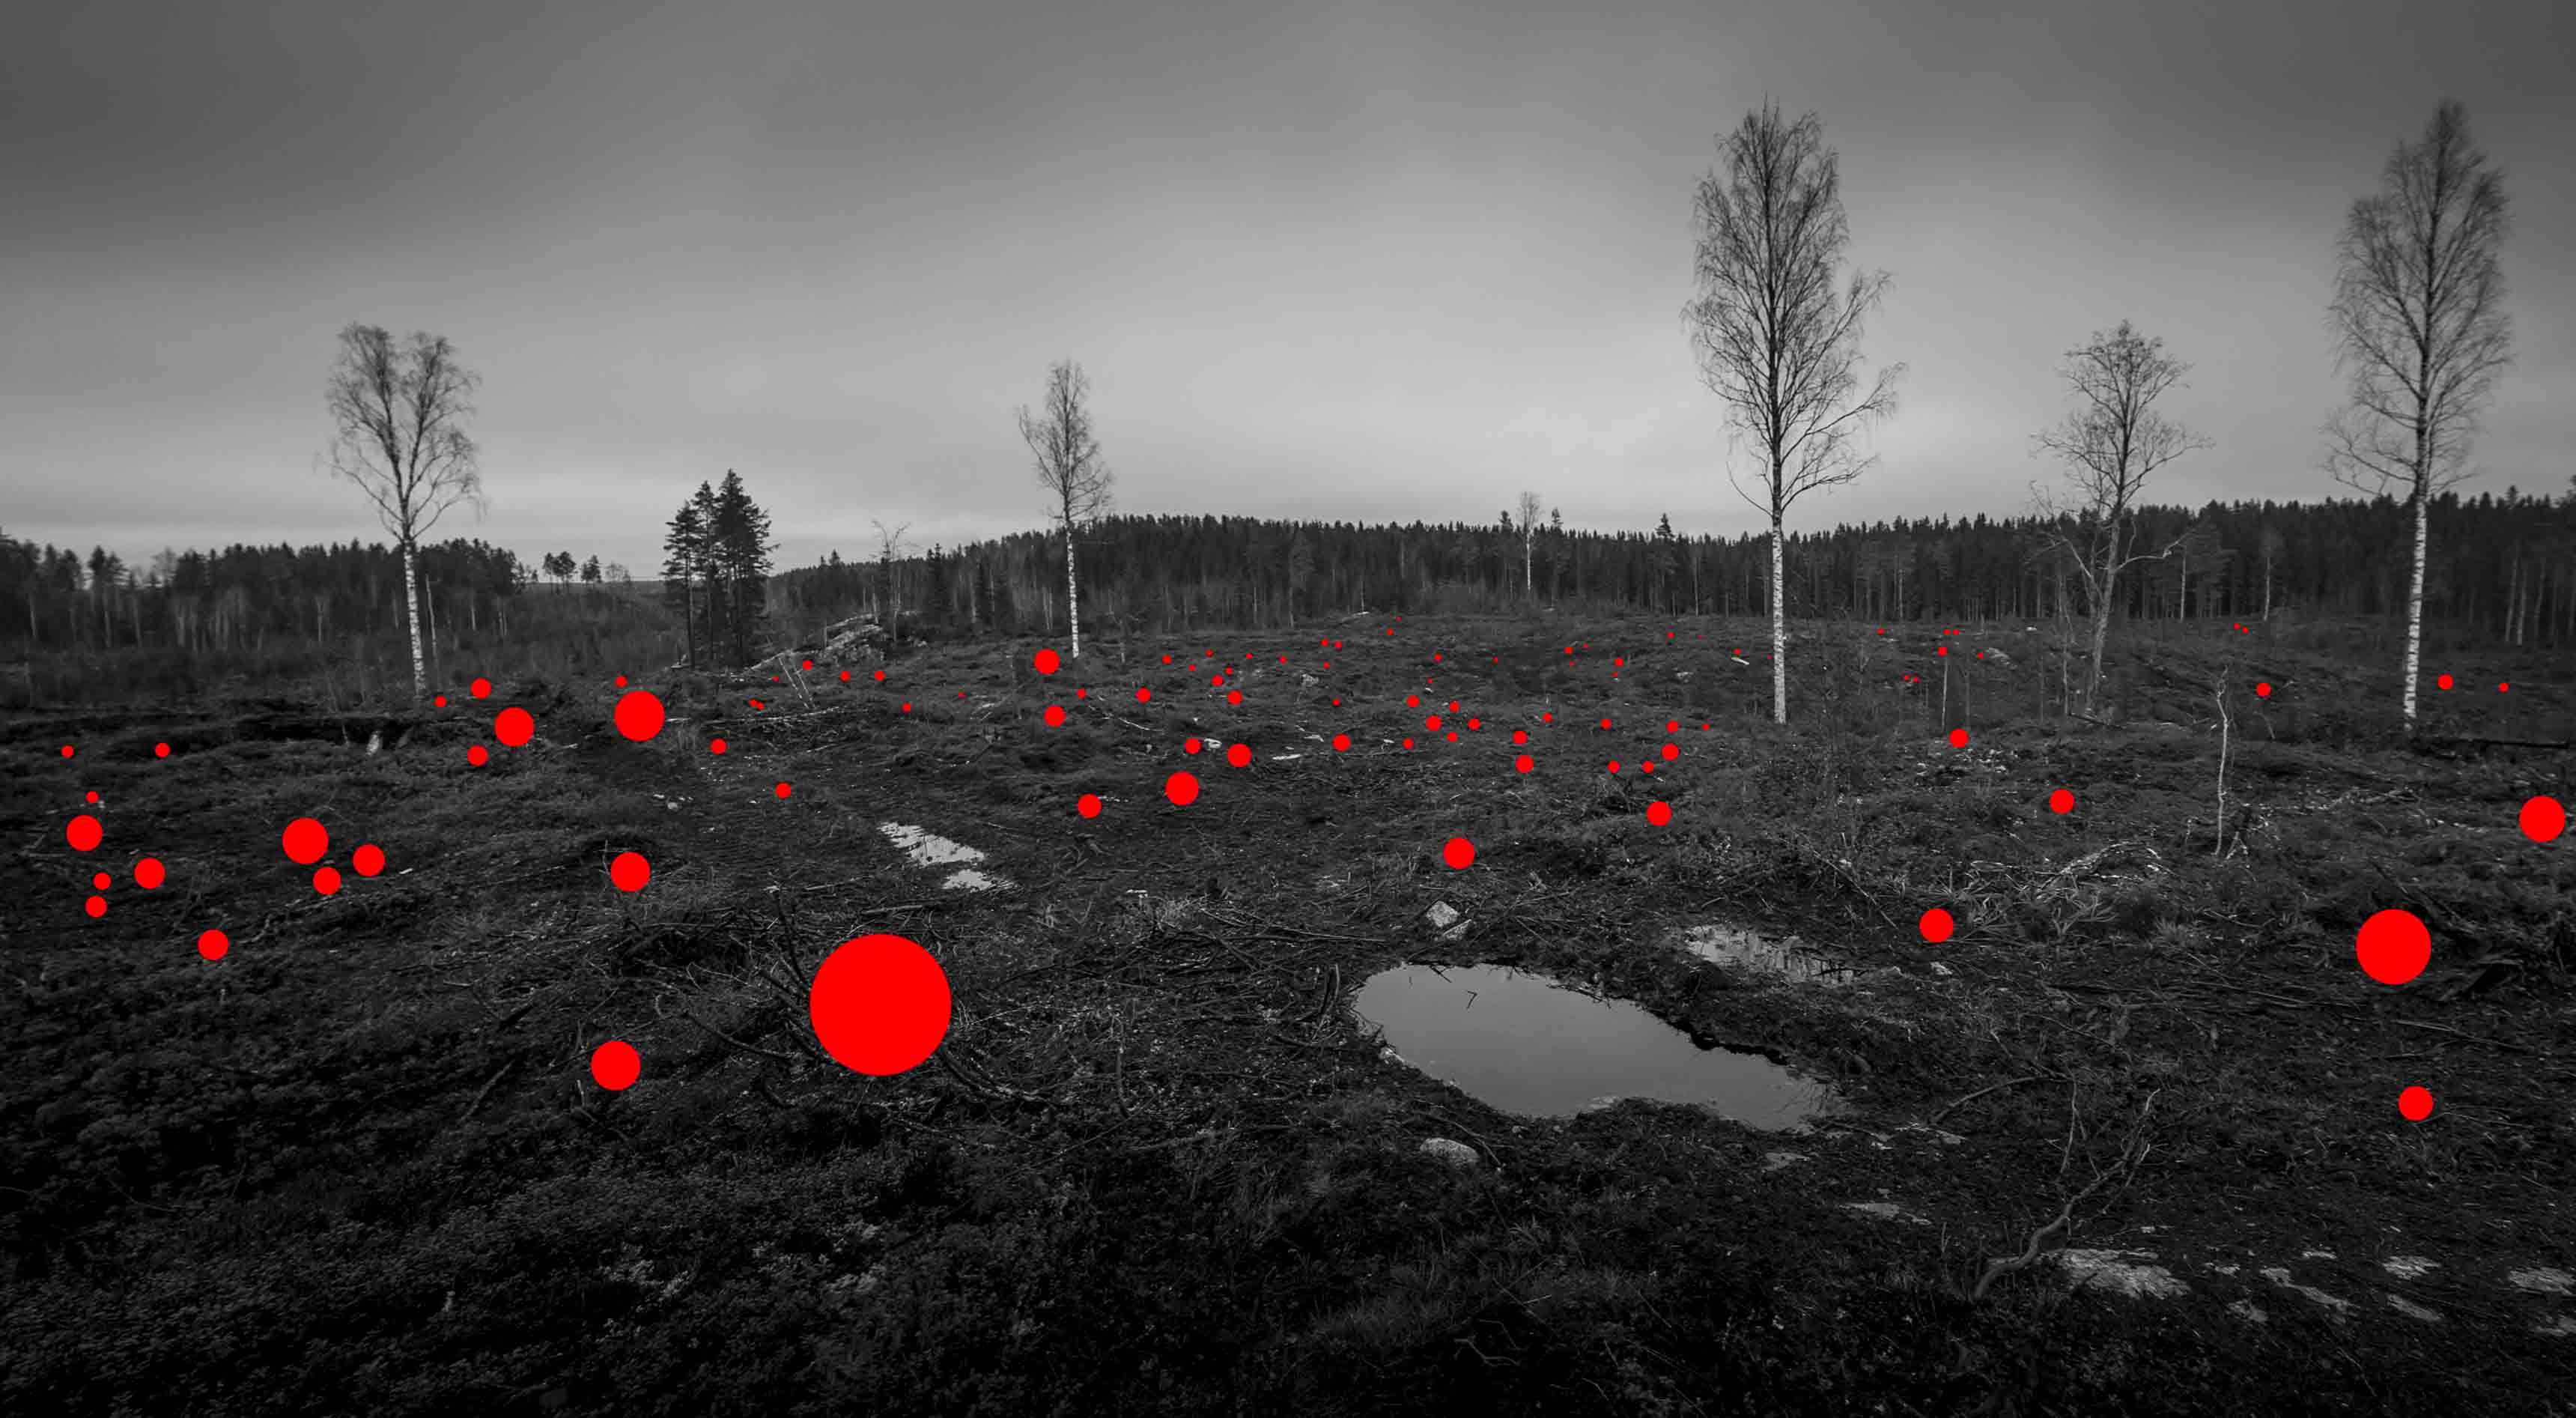 """100 Mistakes Made by Previous Generation"", 100 hectares, Jaakko Kahilaniemi, 2017."